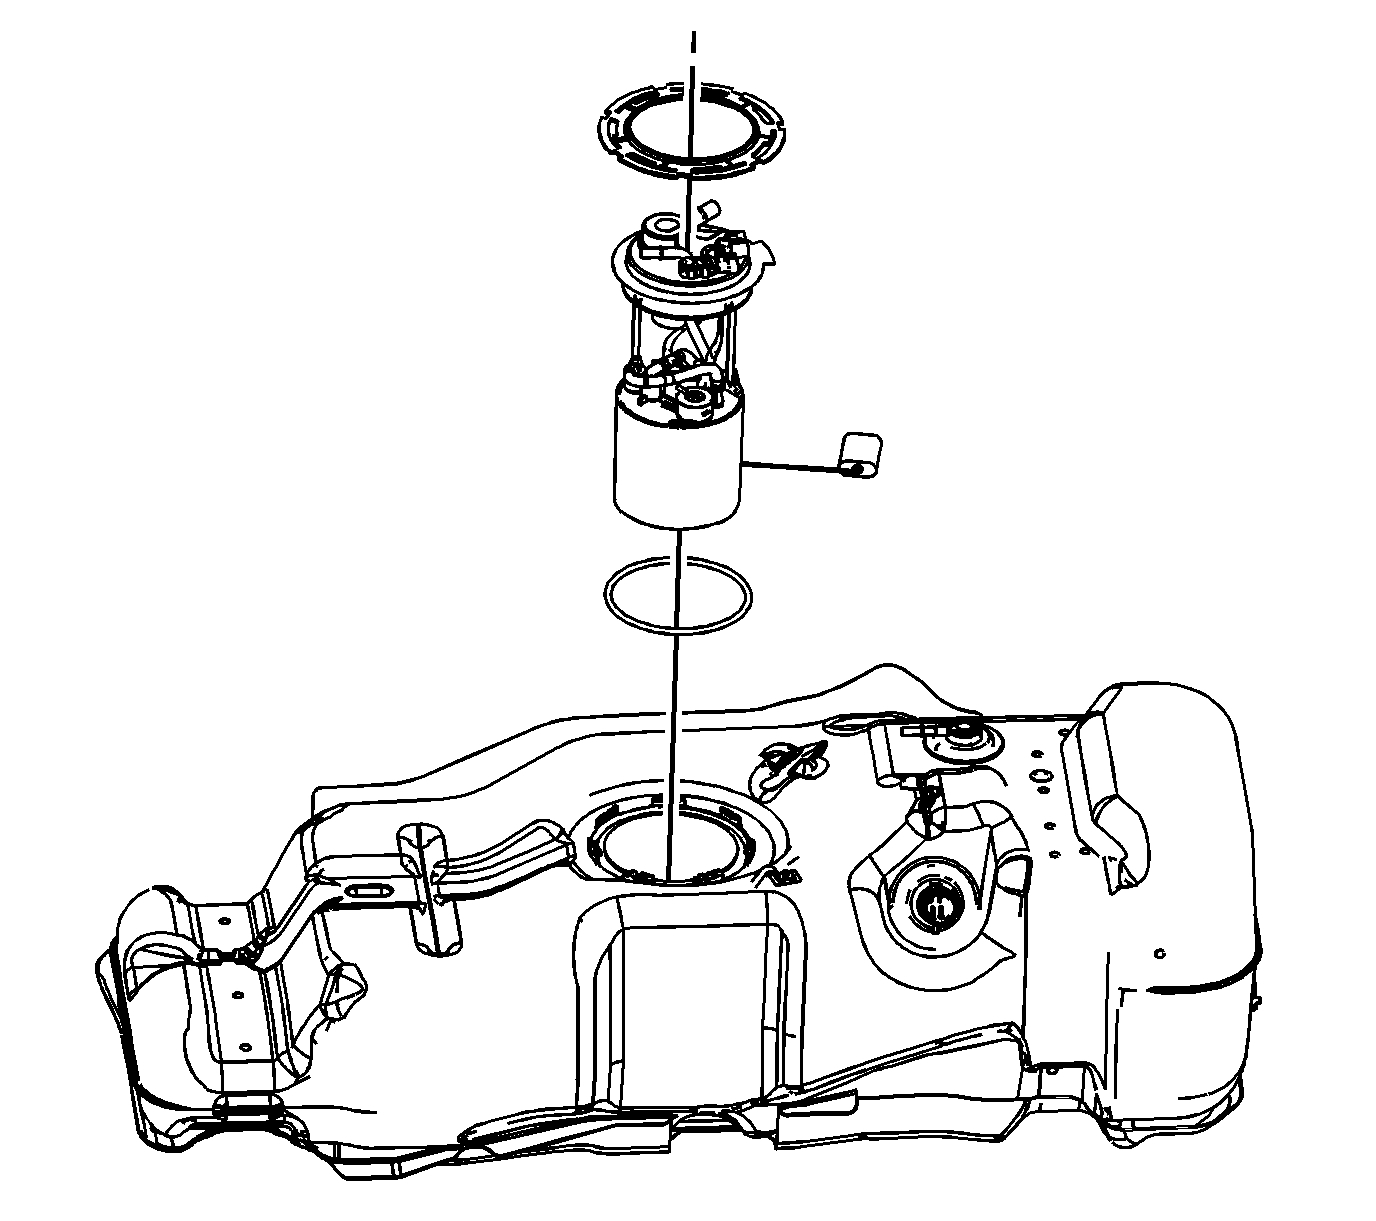 Fuel Pump: I Had a Code PO068 and PO101. I Replaced the